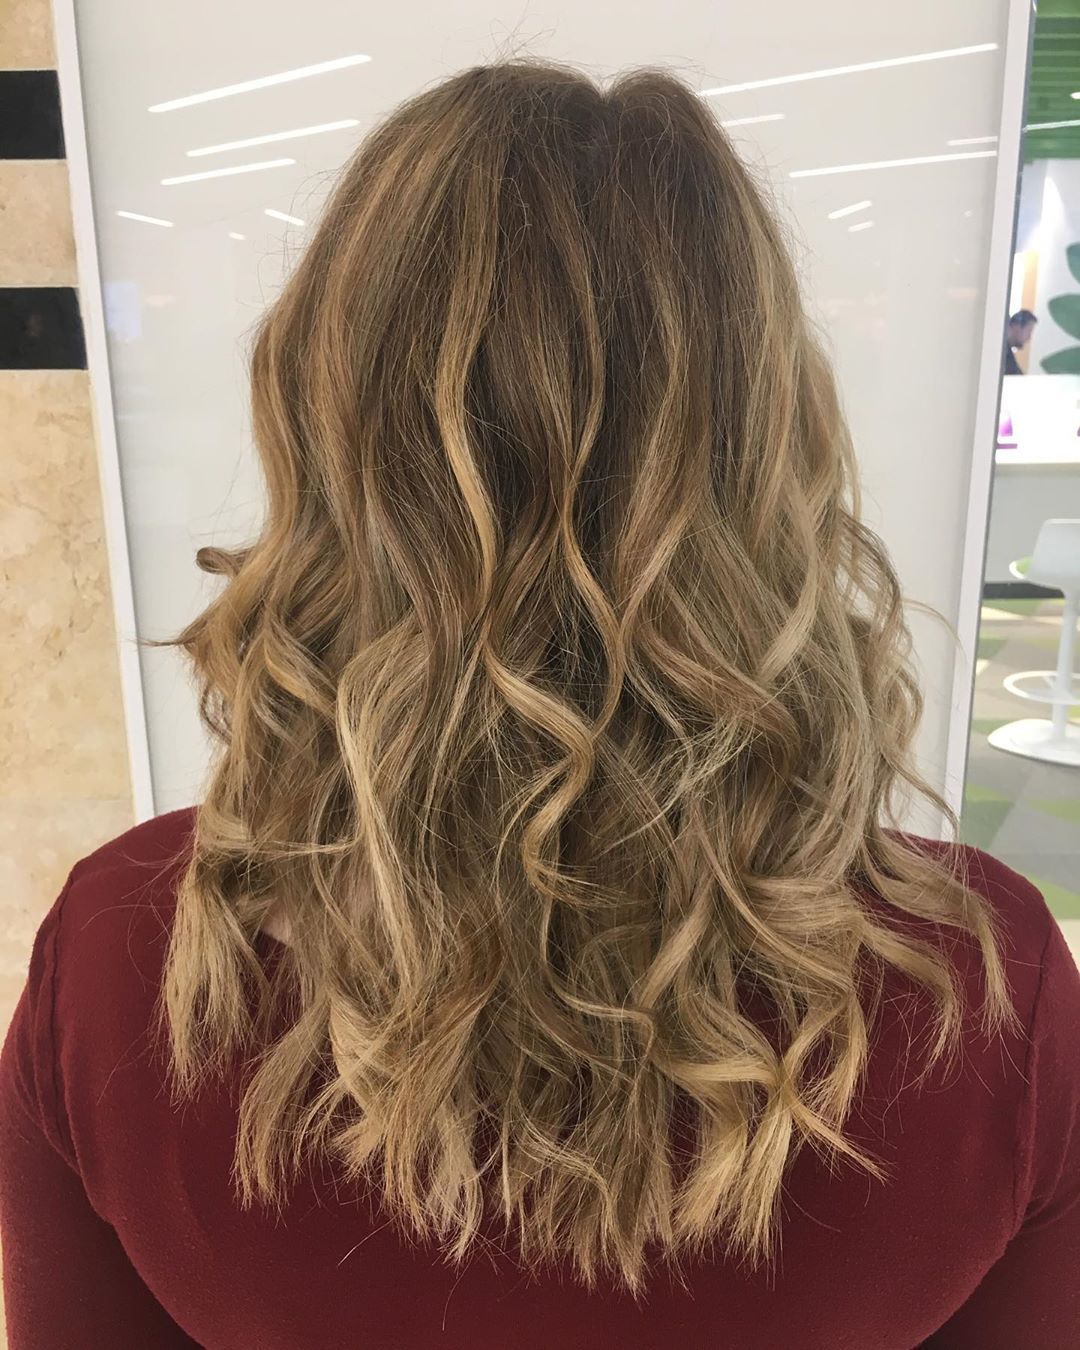 Natural Balayage For The Summer Swipe For The Before Call Regis Salon And Book An Appointment Or Book Online Long Hair Styles Balayage Hair Styles